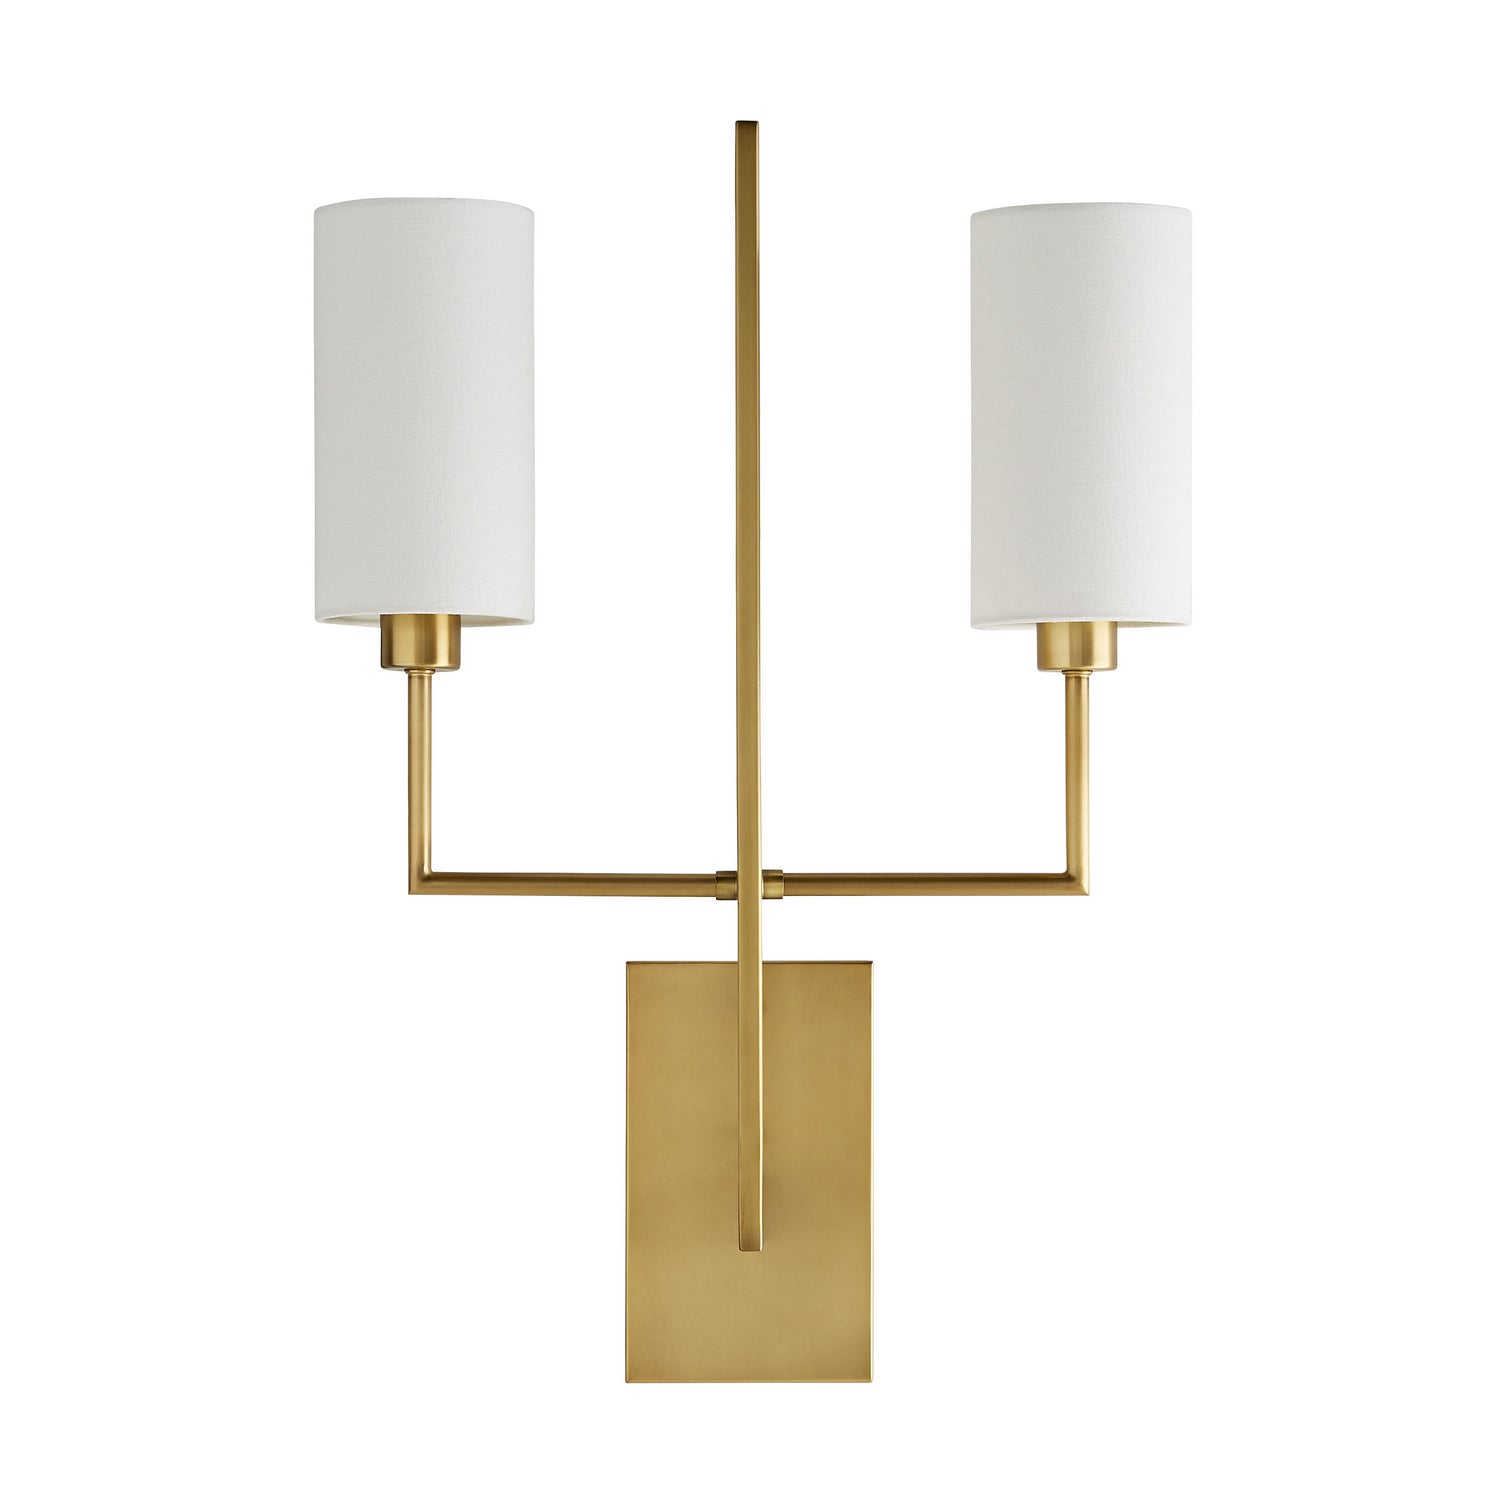 Arteriors - Two Light Wall Sconce - Ray Booth for Arteriors - Antique Brass